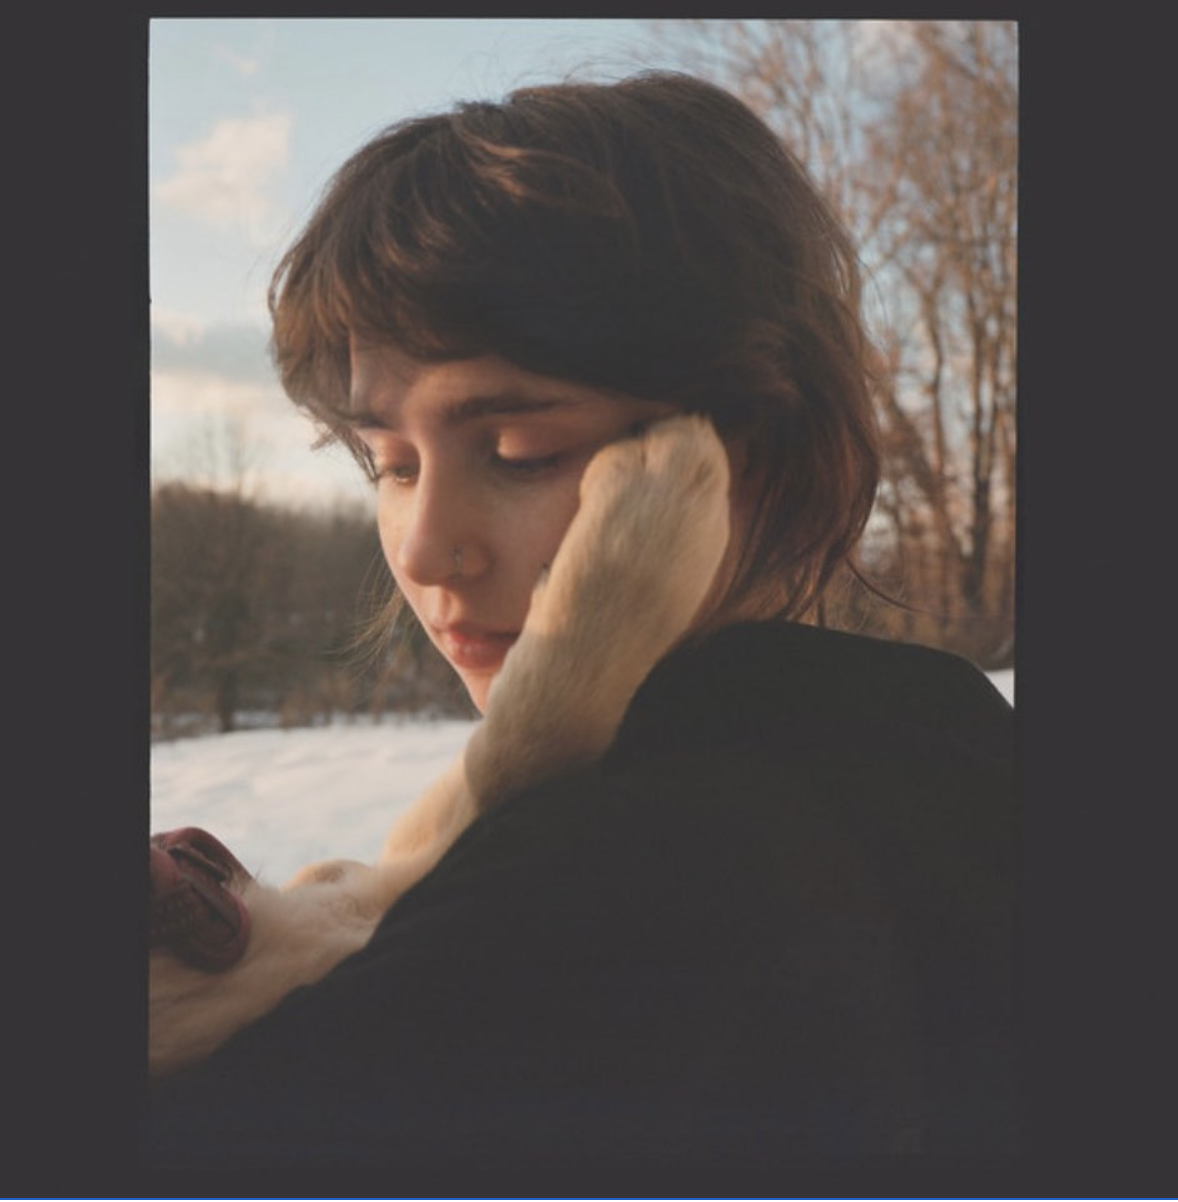 Clairo and dog Joanie on 'Sling' Album Cover (from her Instagram page)